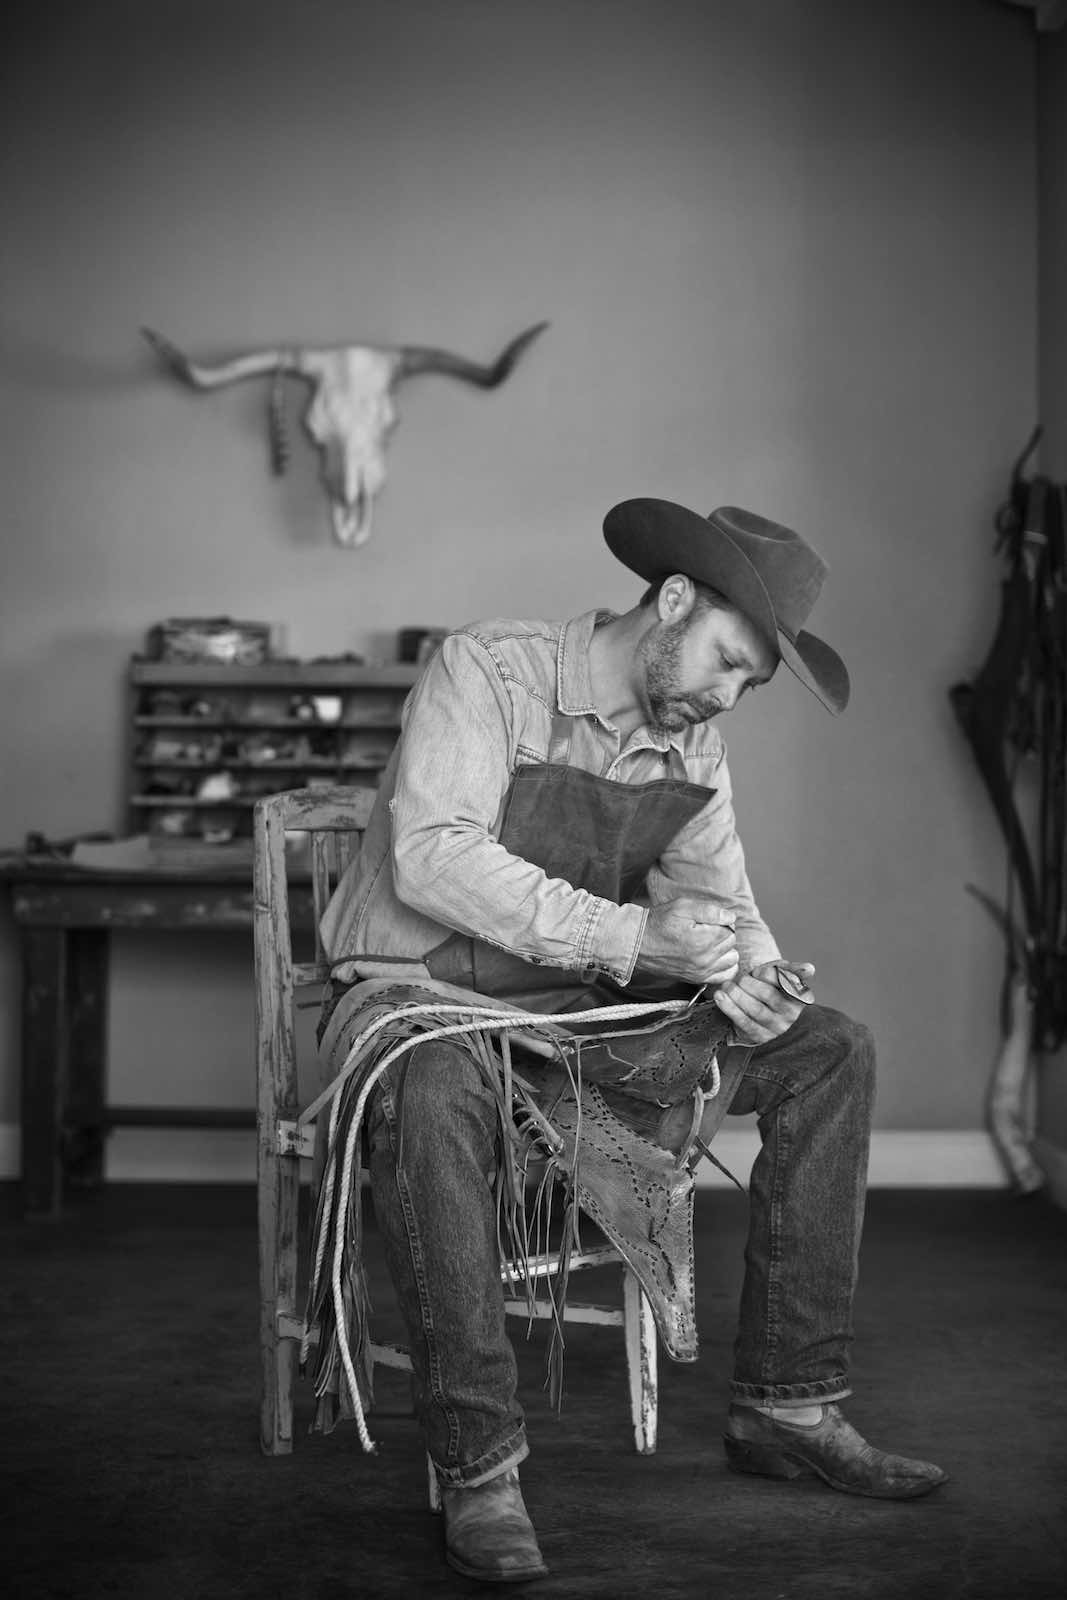 Jody Horton Photography - Leather worker sitting, working on a piece, shot in B&W.